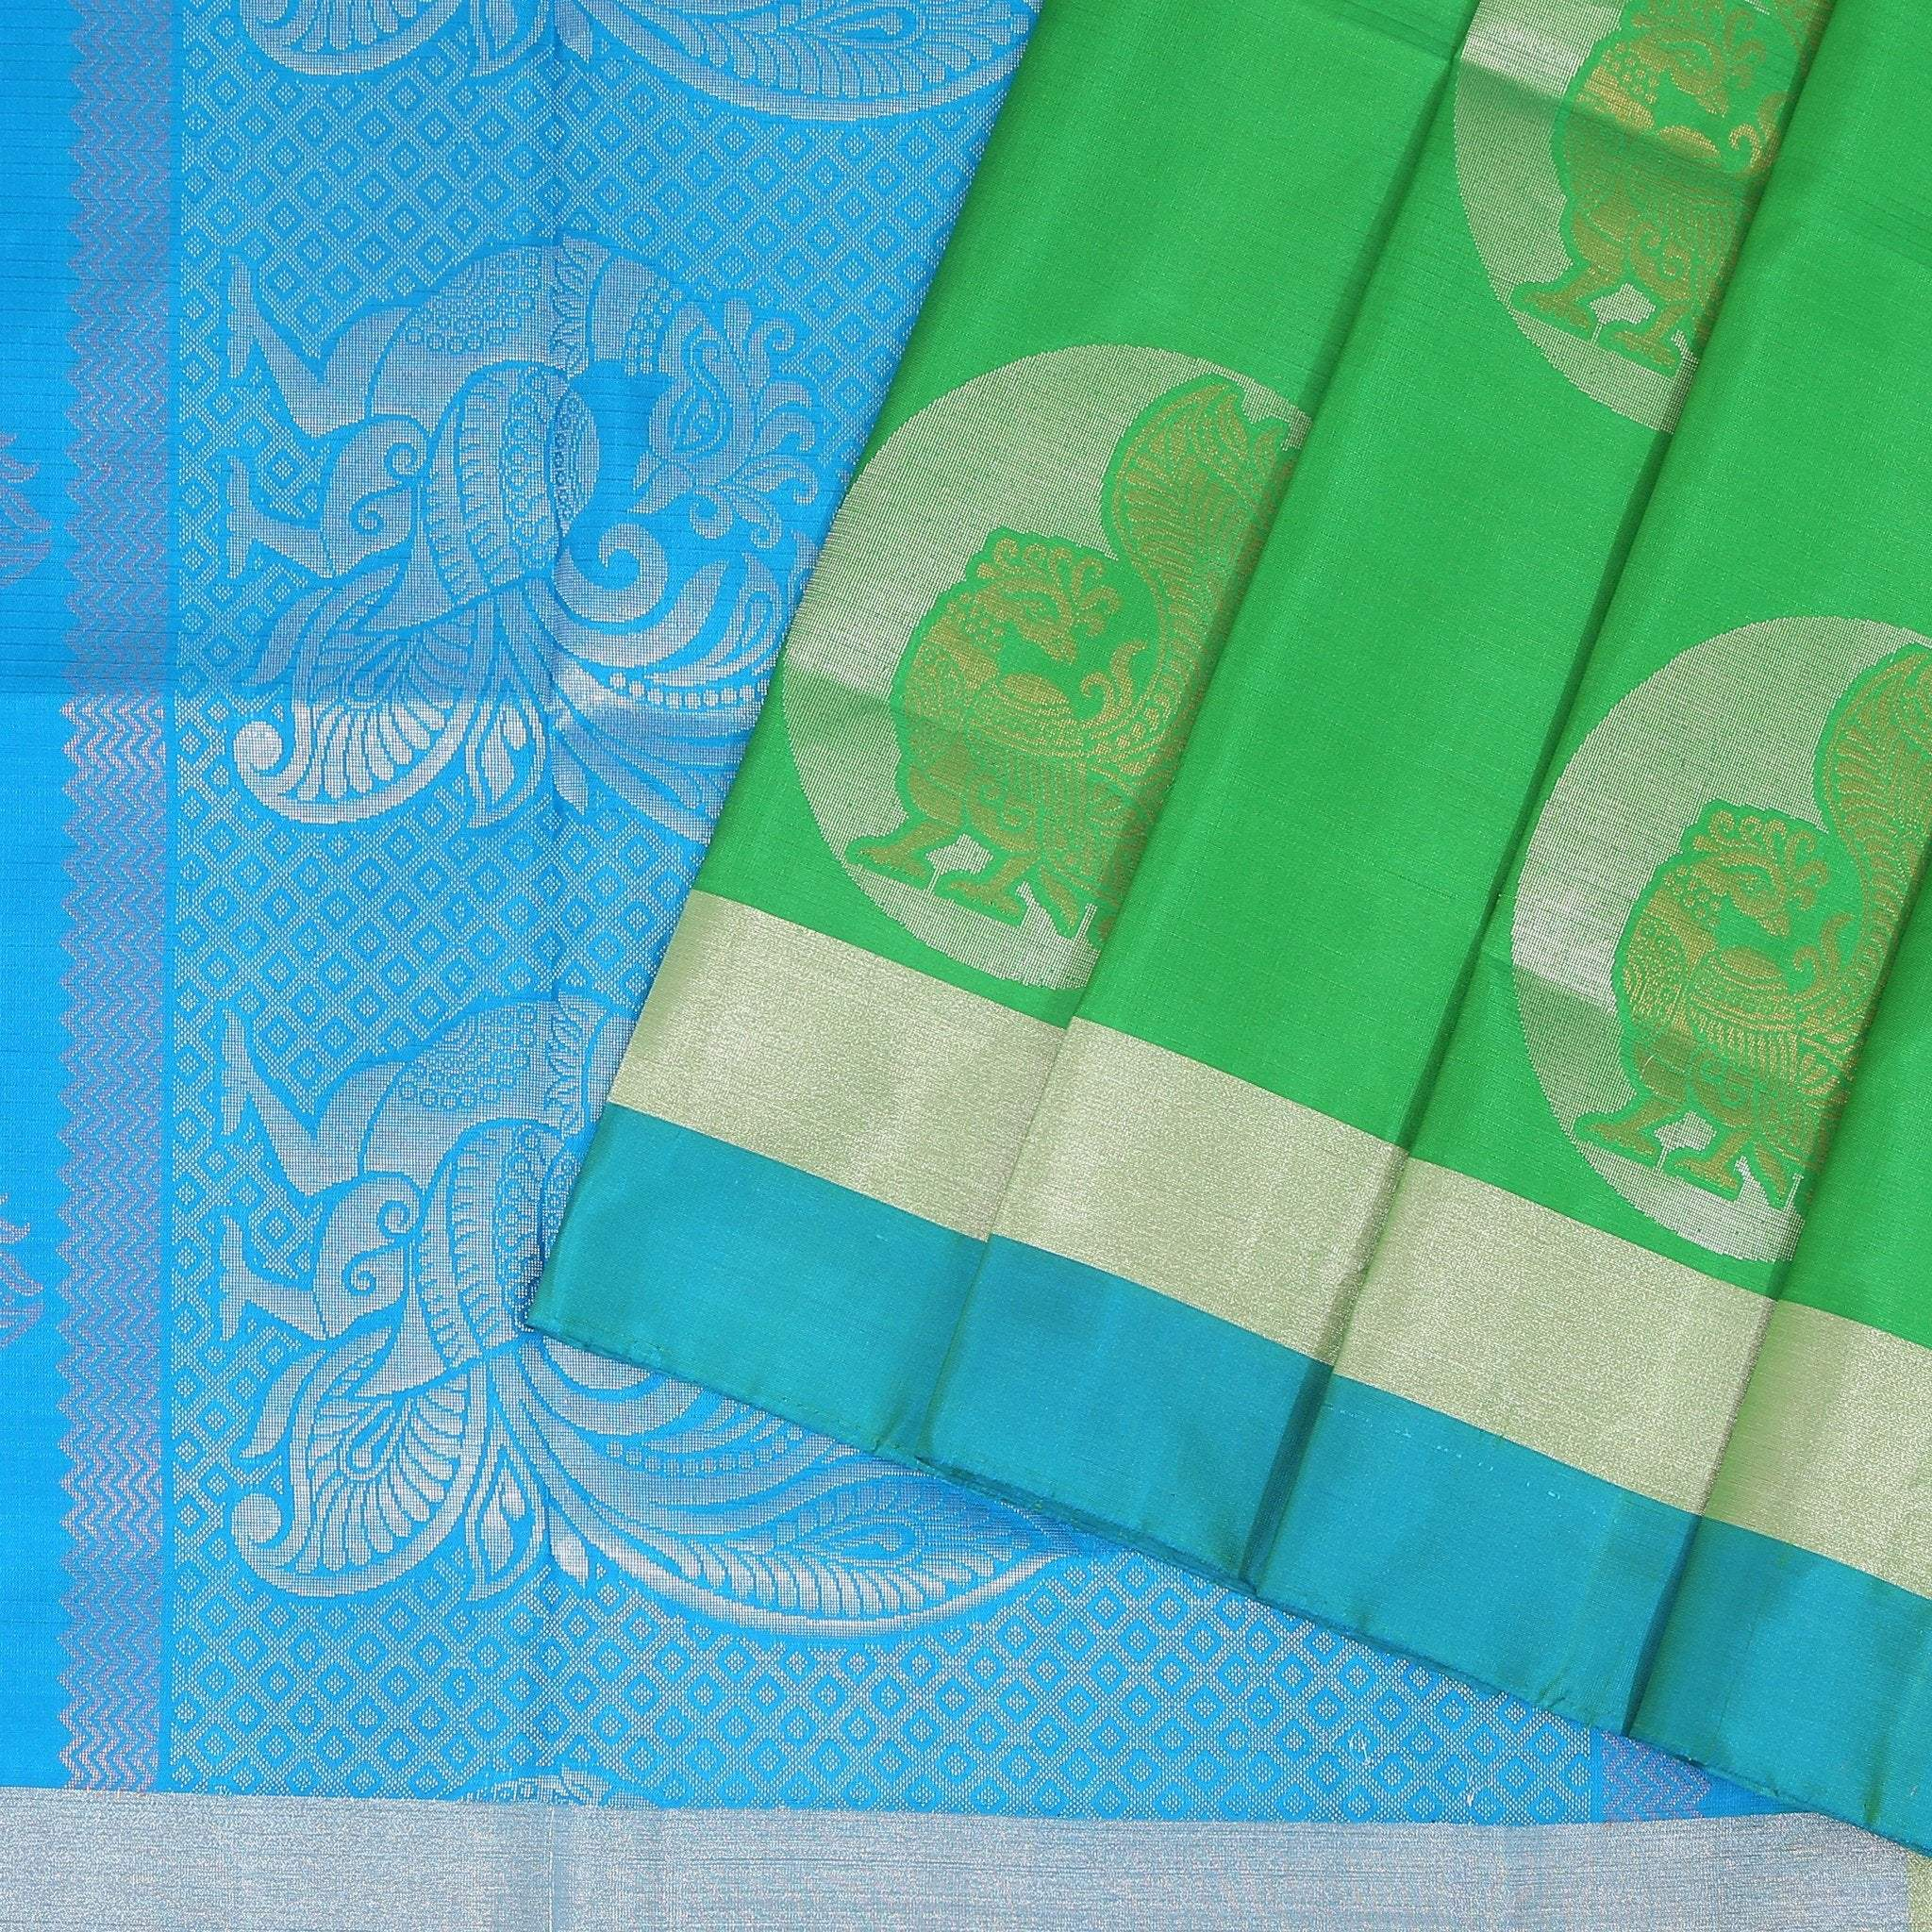 Parakeet-Green-Soft-Silk-Saree-with-contrast-Electric-Blue-border-and-pallu.